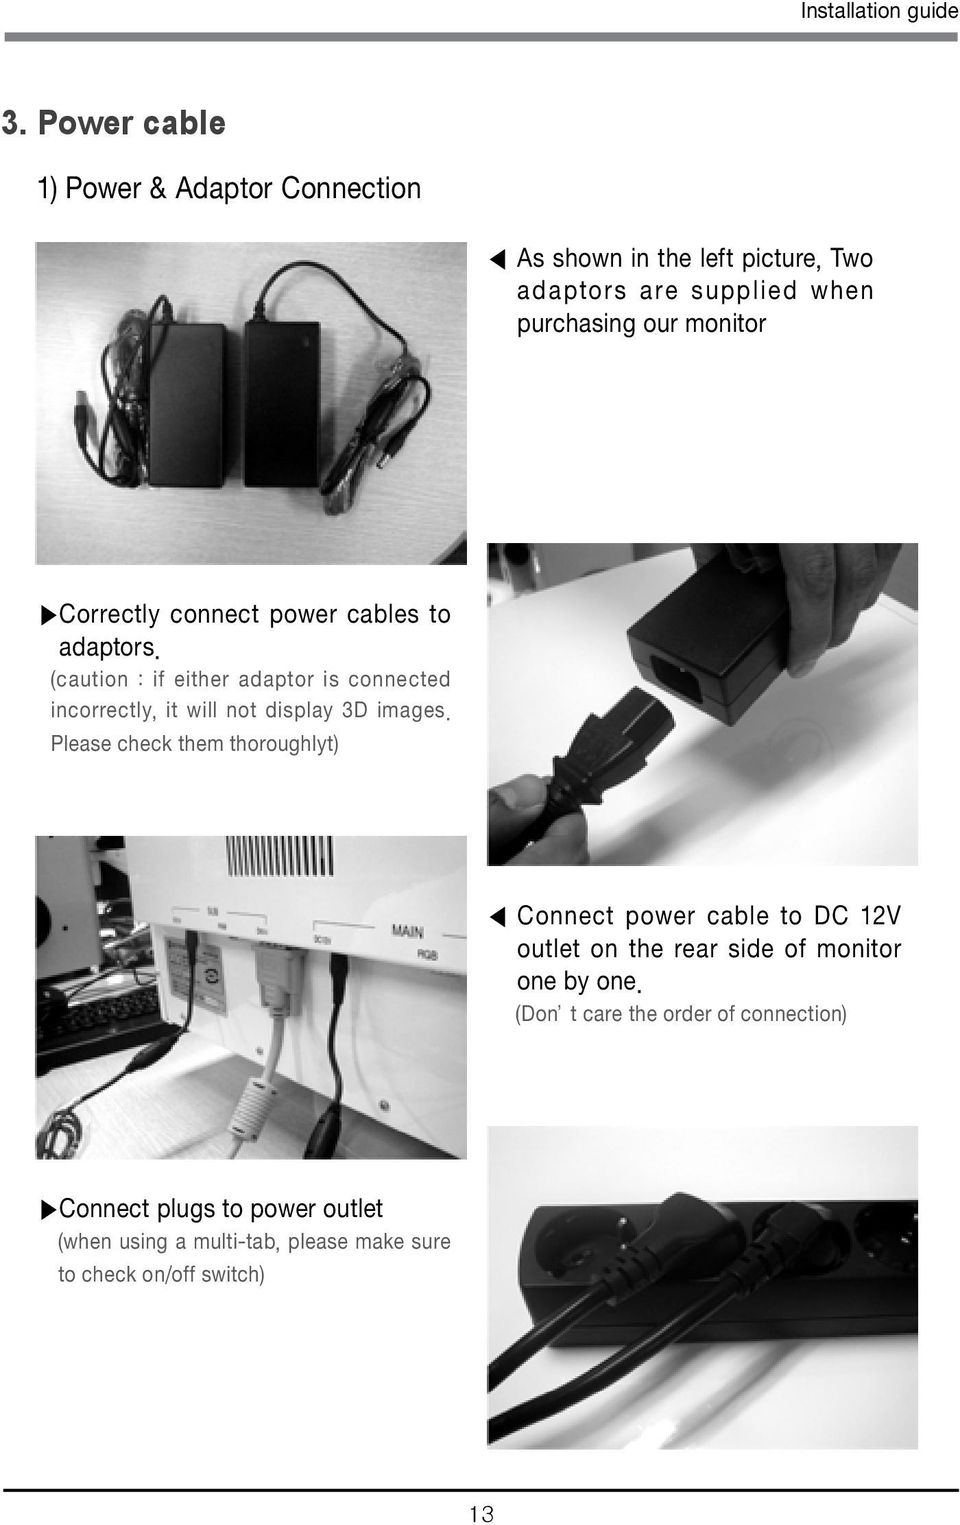 Correctly connect power cables to adaptors. (caution : if either adaptor is connected incorrectly, it will not display 3D images.